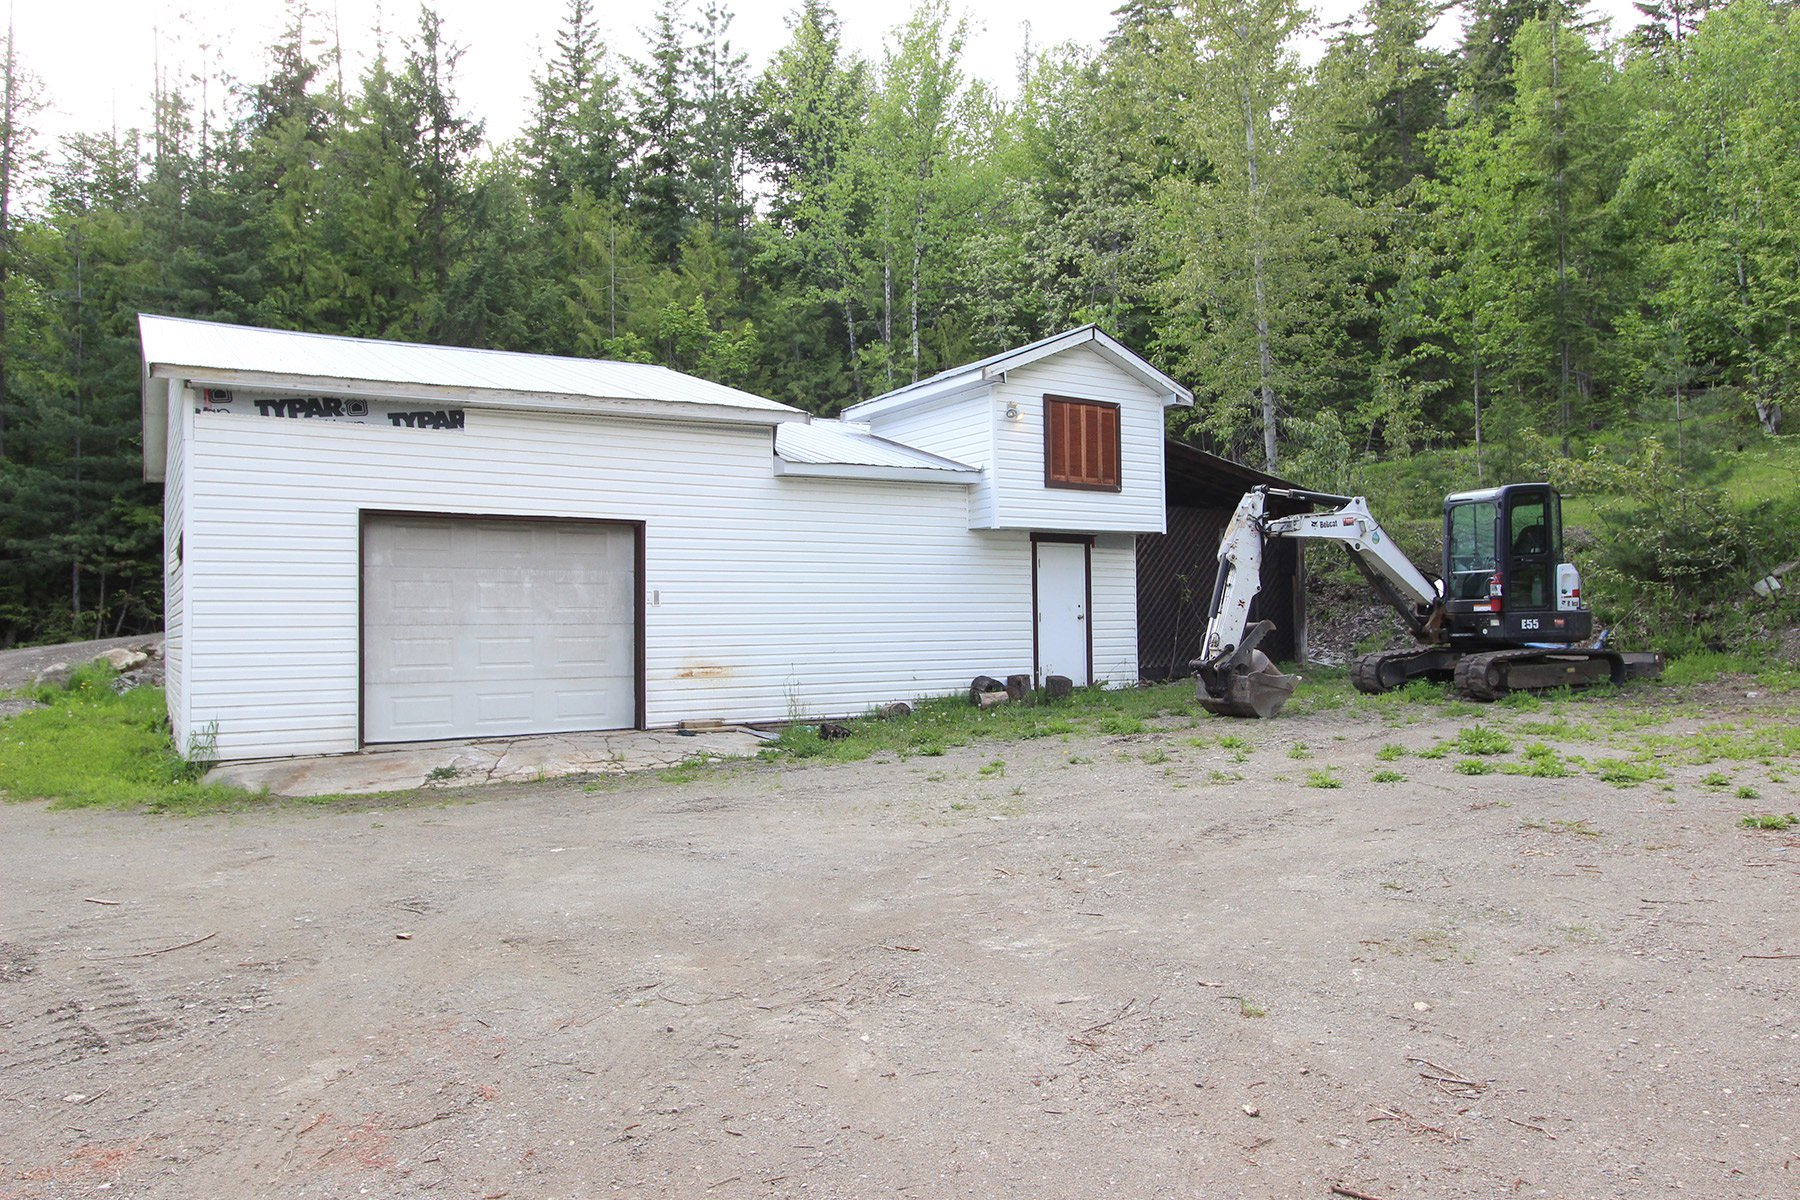 Photo 58: Photos: 6831 Magna Bay Drive in Magna Bay: House with Acreage for sale : MLS®# 10205520